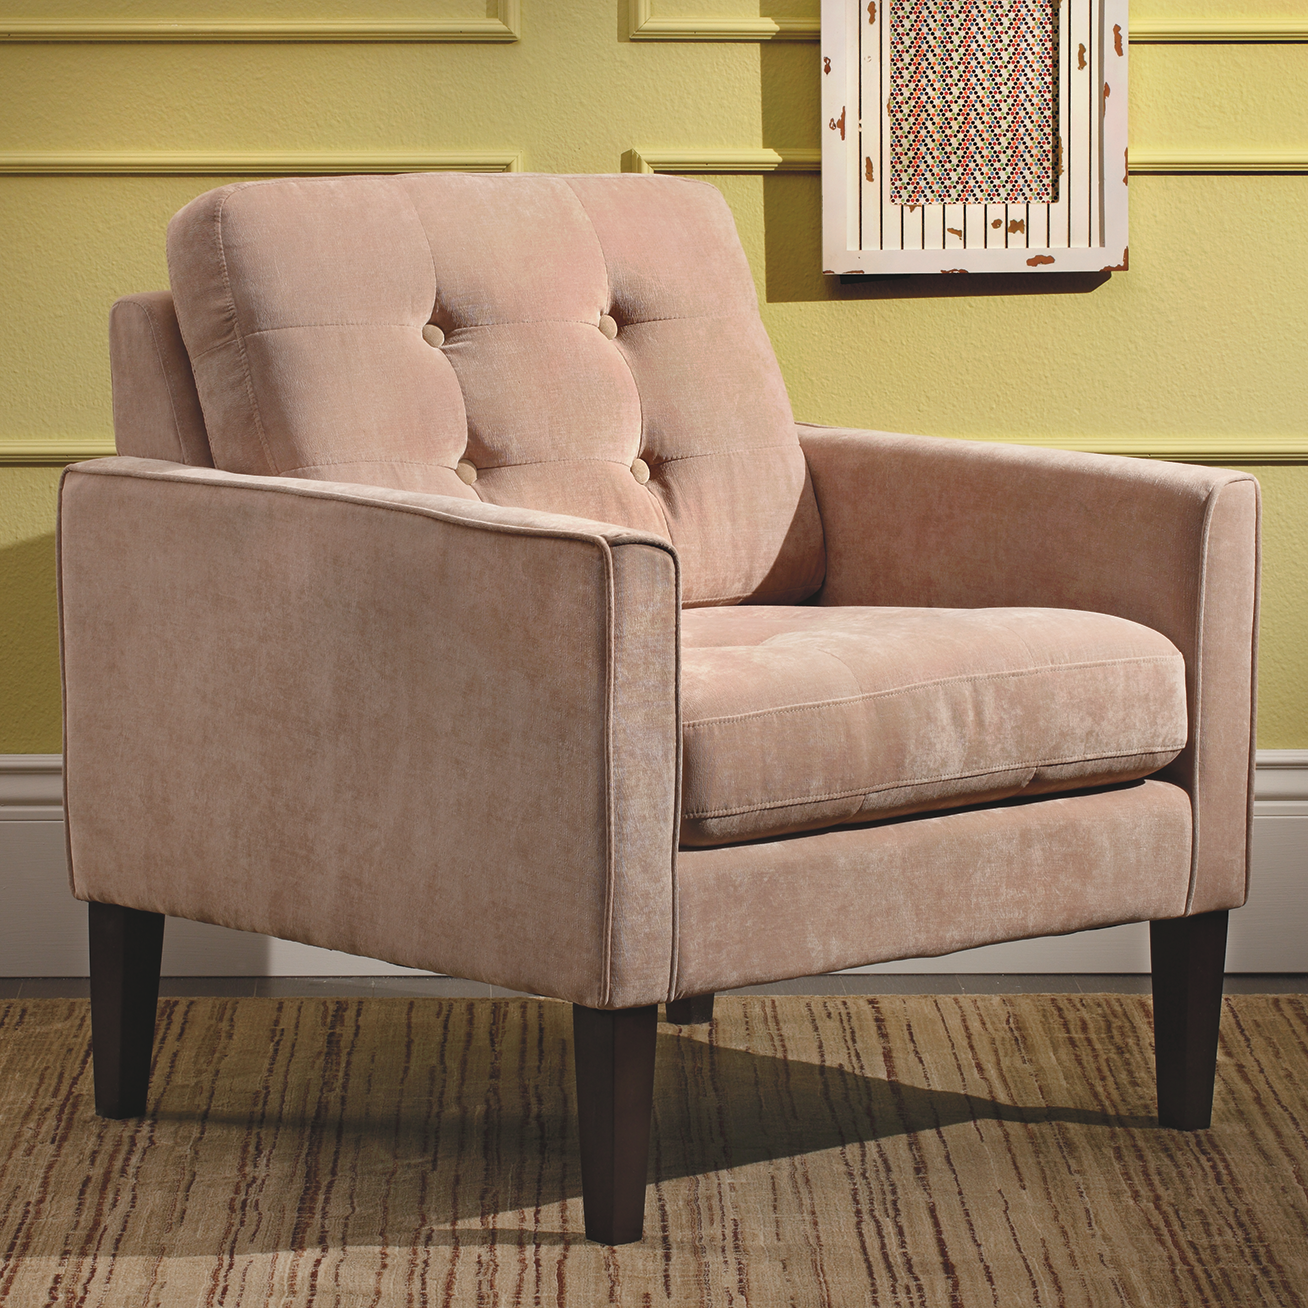 Accent-Chair-pg.-14